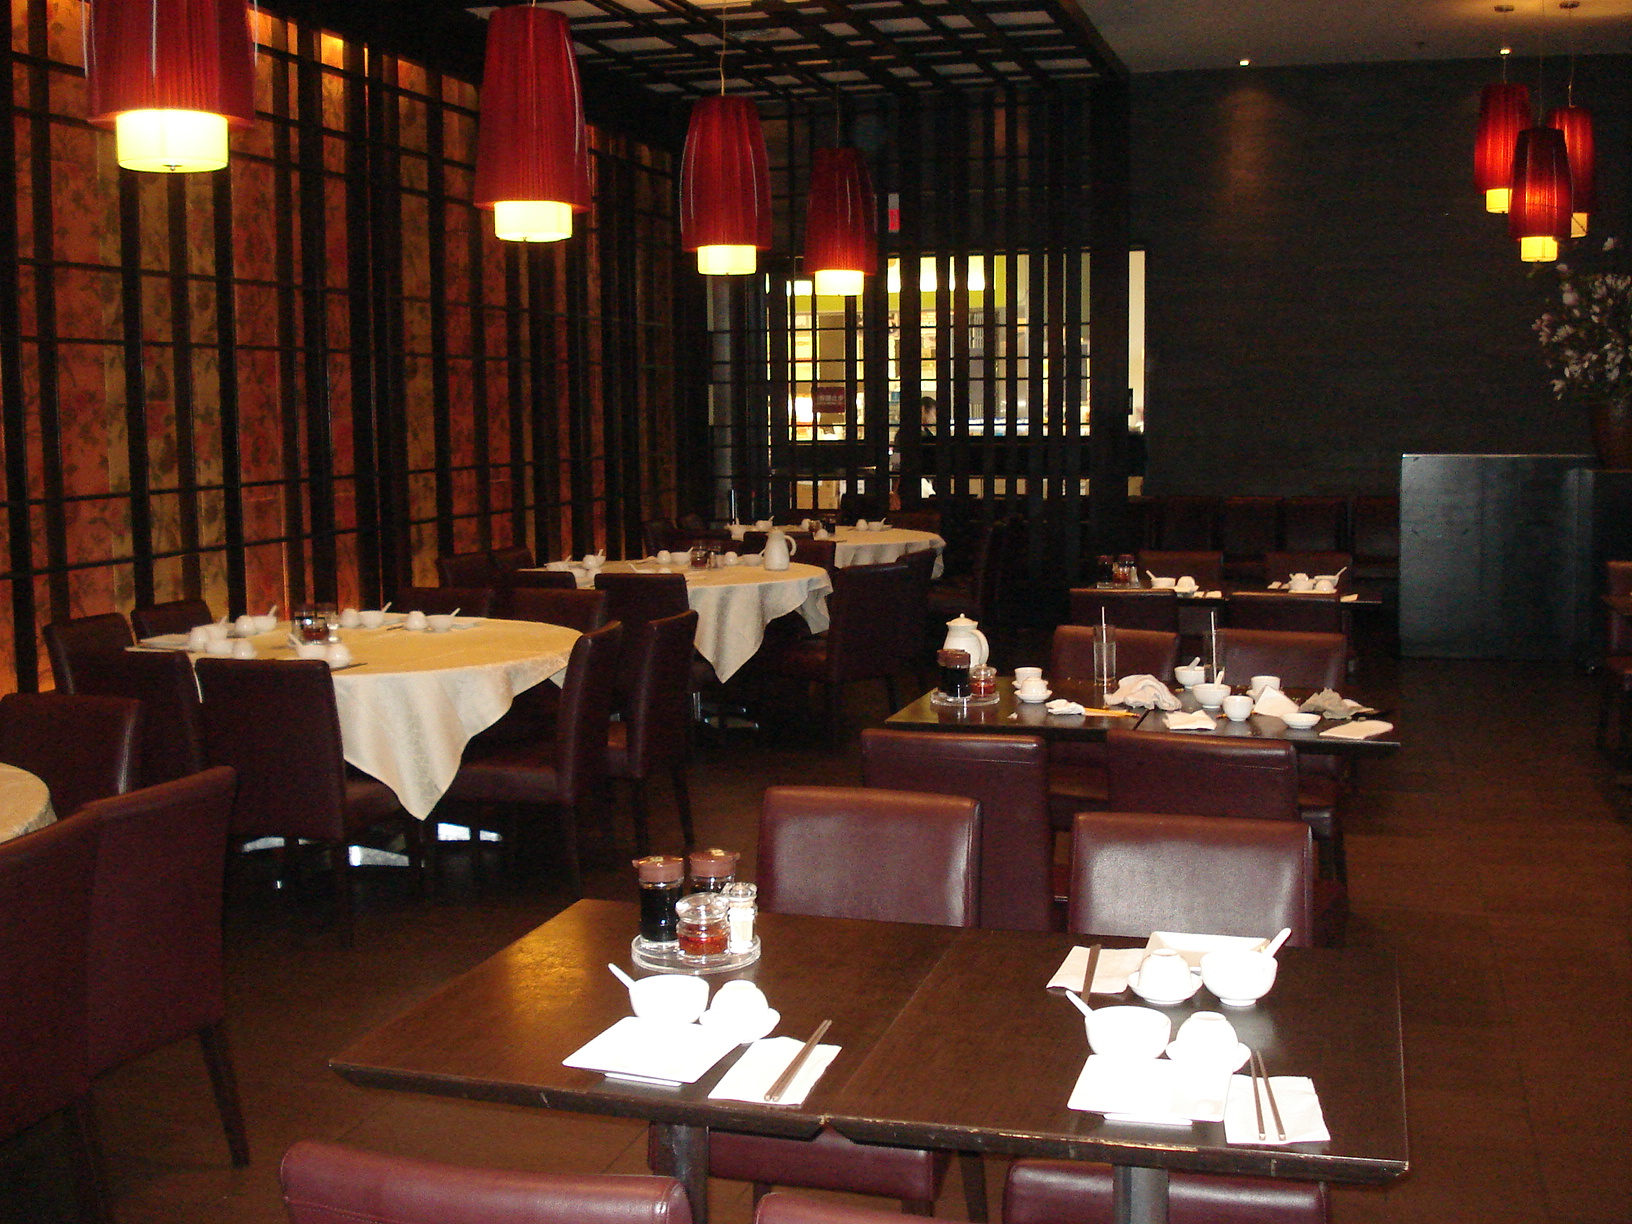 Picture of wide pathways within interior of restaurant